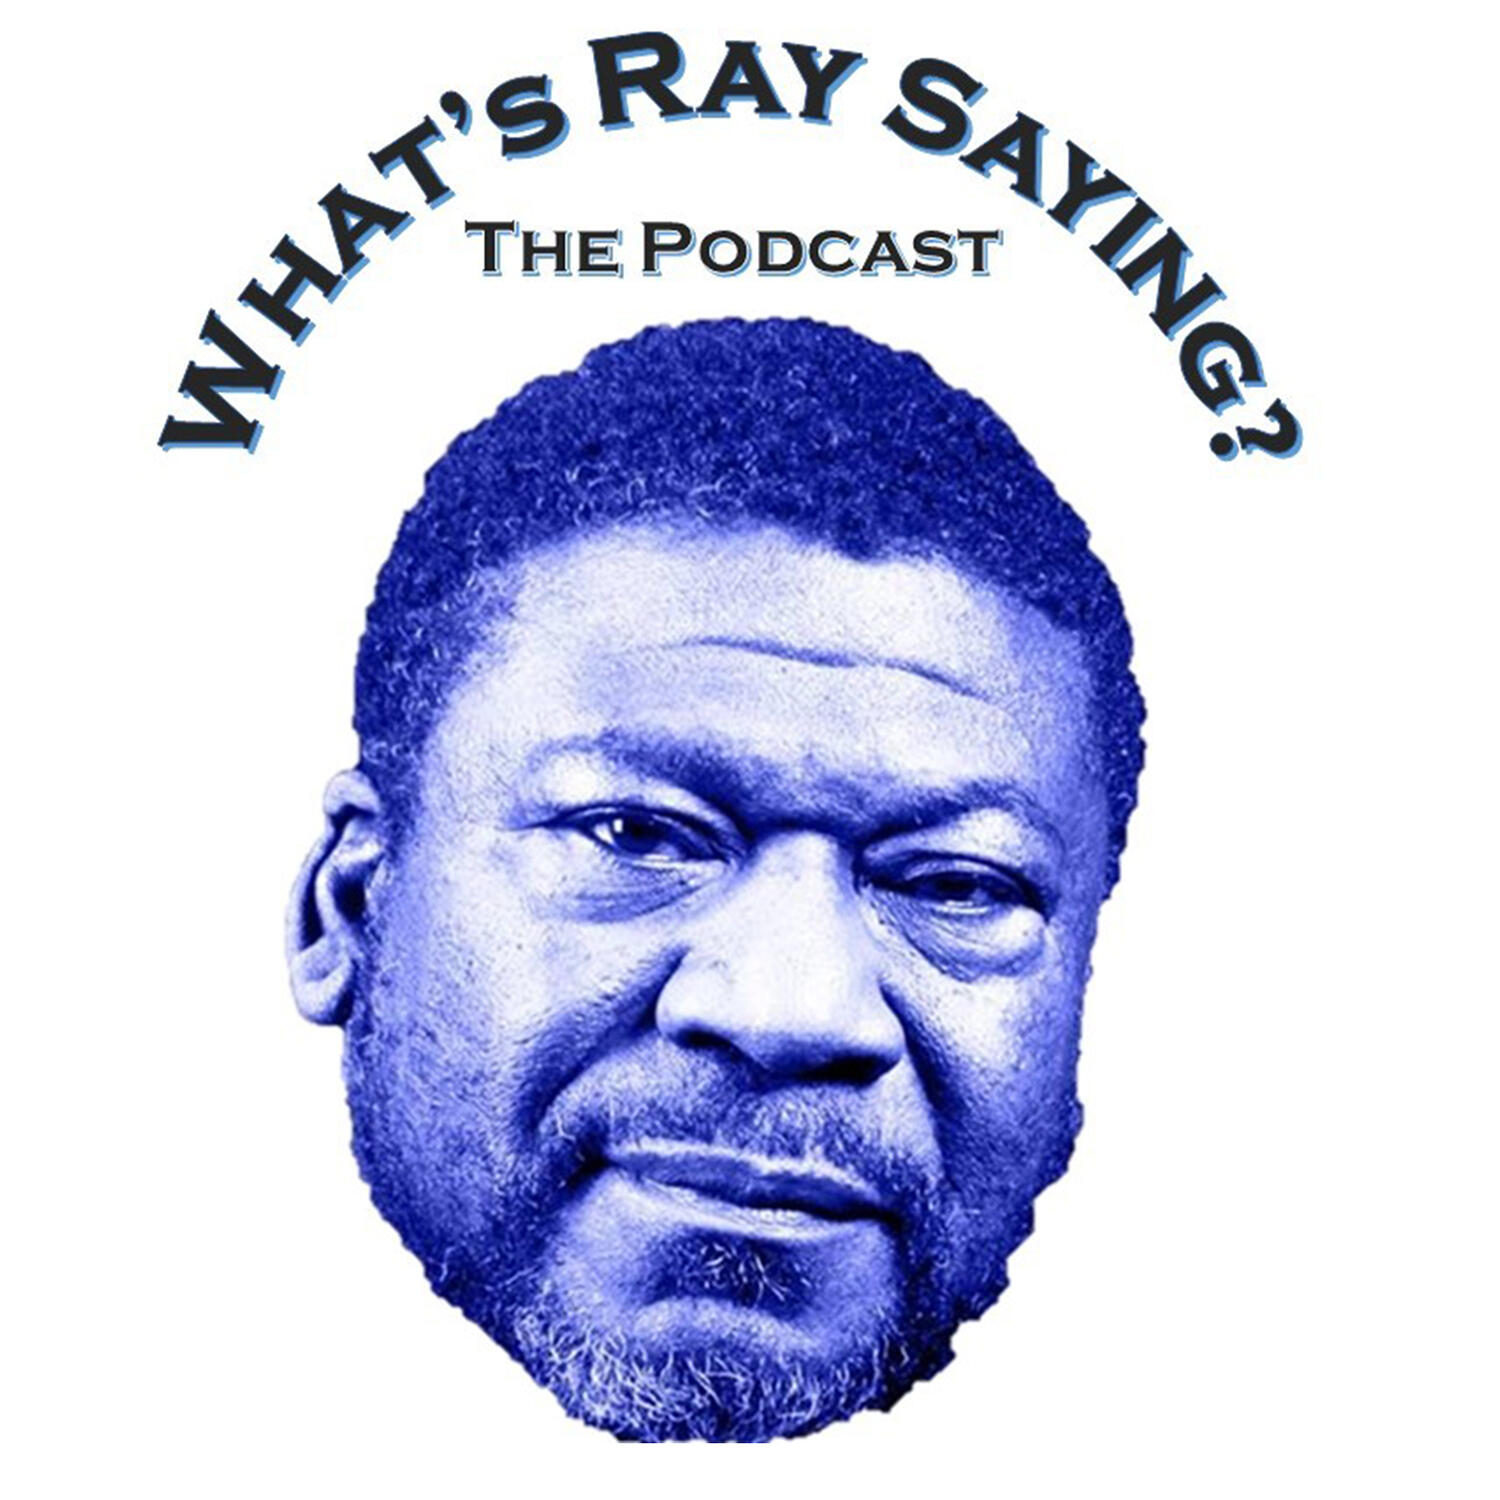 Blacks and Indians: From What's Ray Saying?